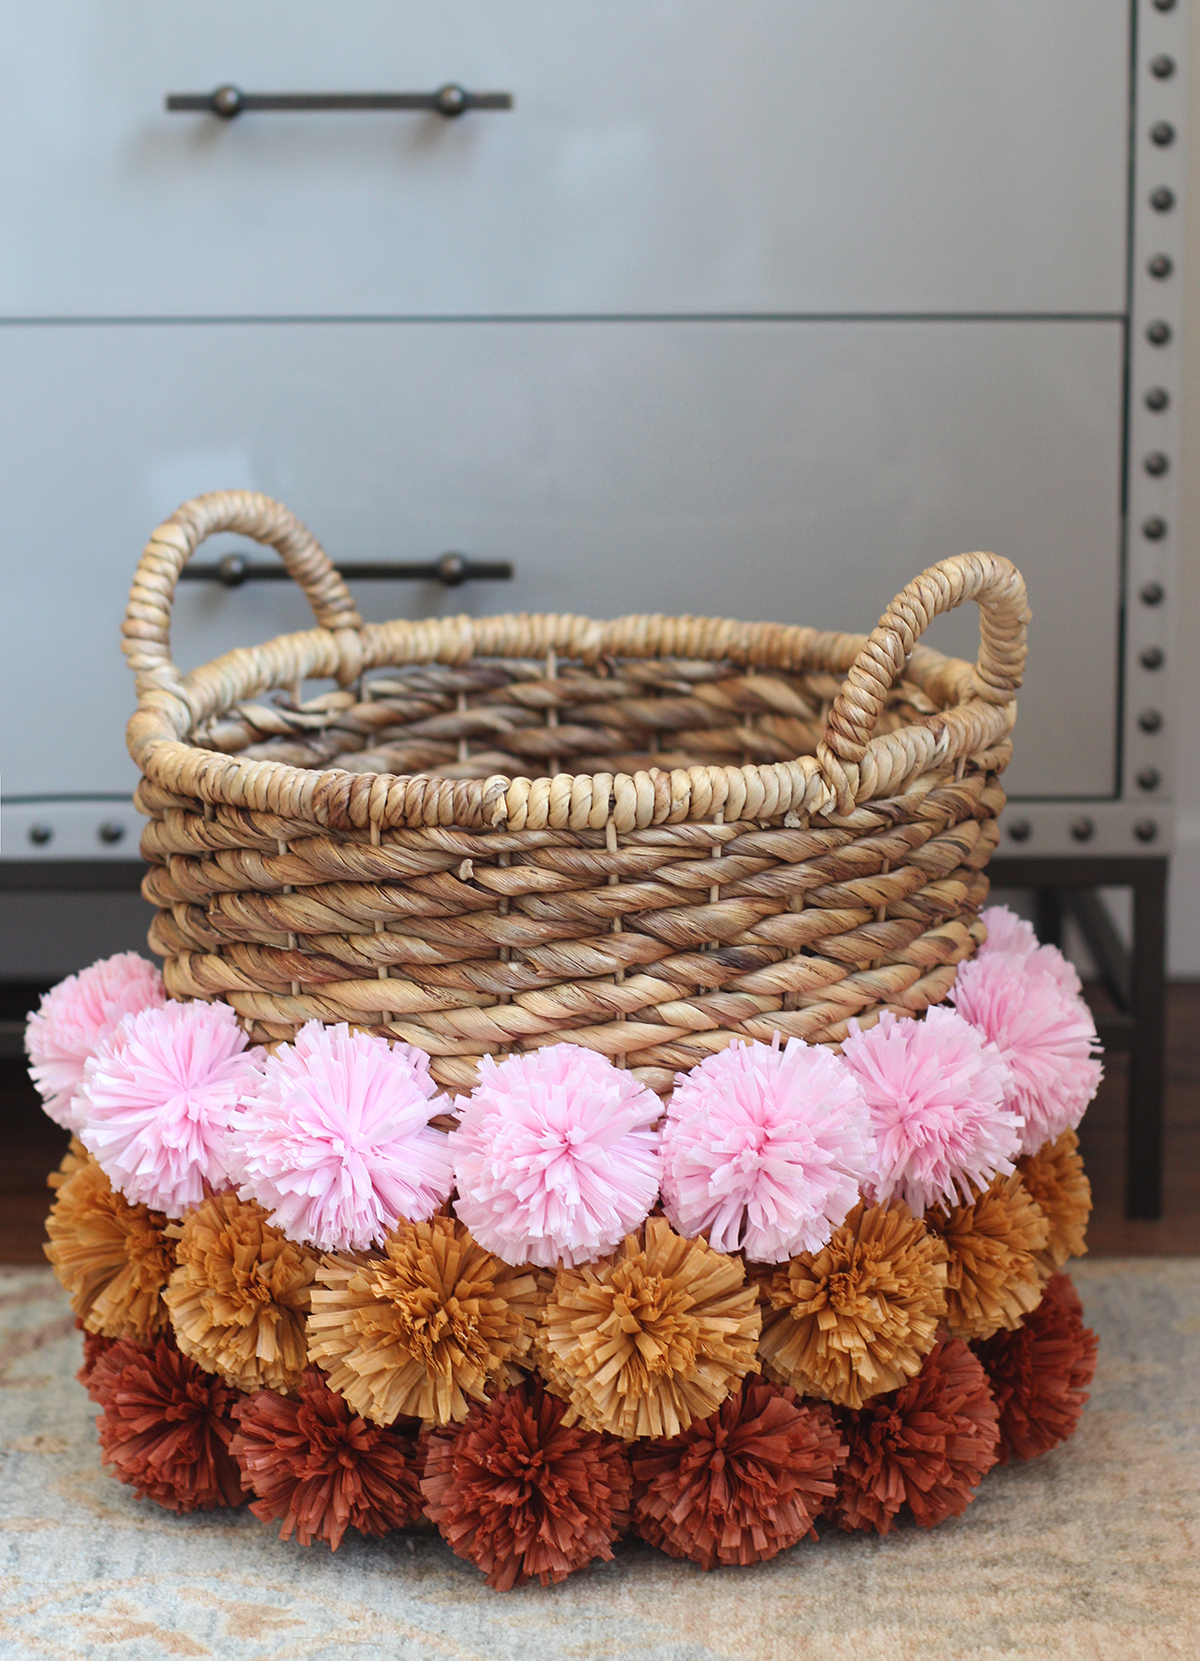 diy pom pom basket honestly wtf. Black Bedroom Furniture Sets. Home Design Ideas